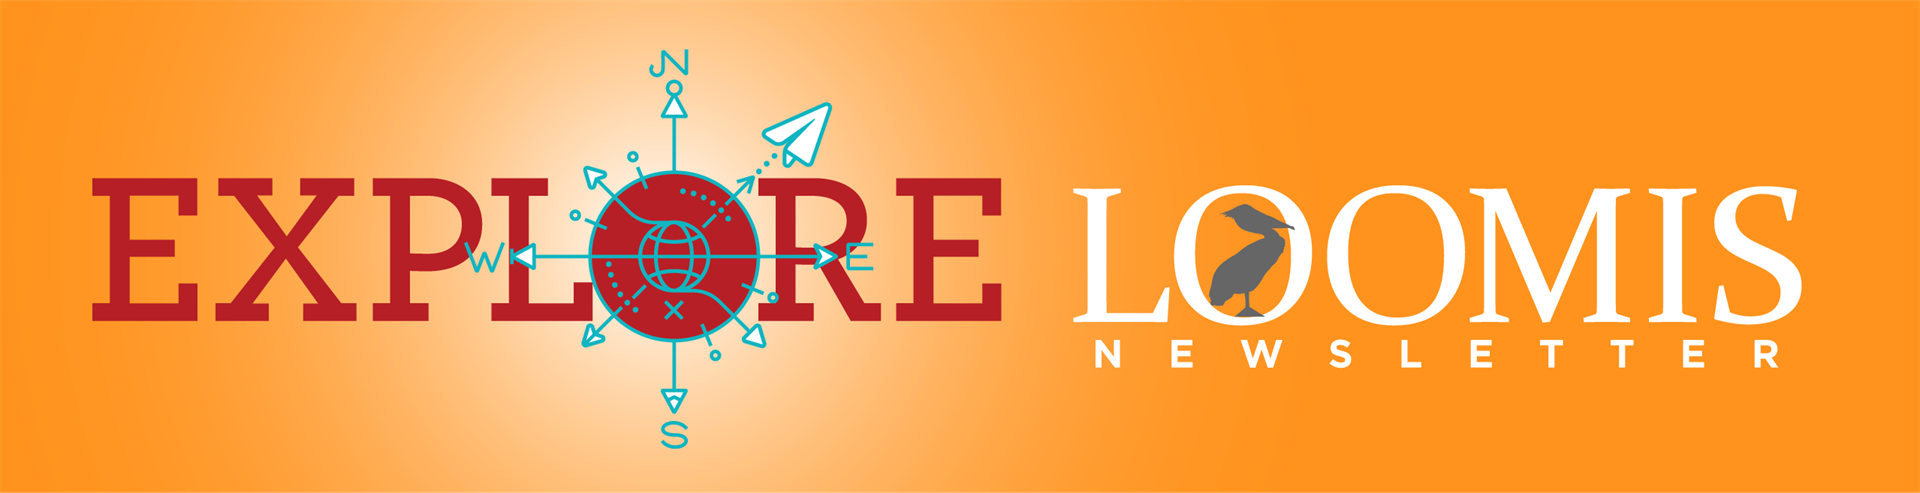 Explore Loomis Newsletter